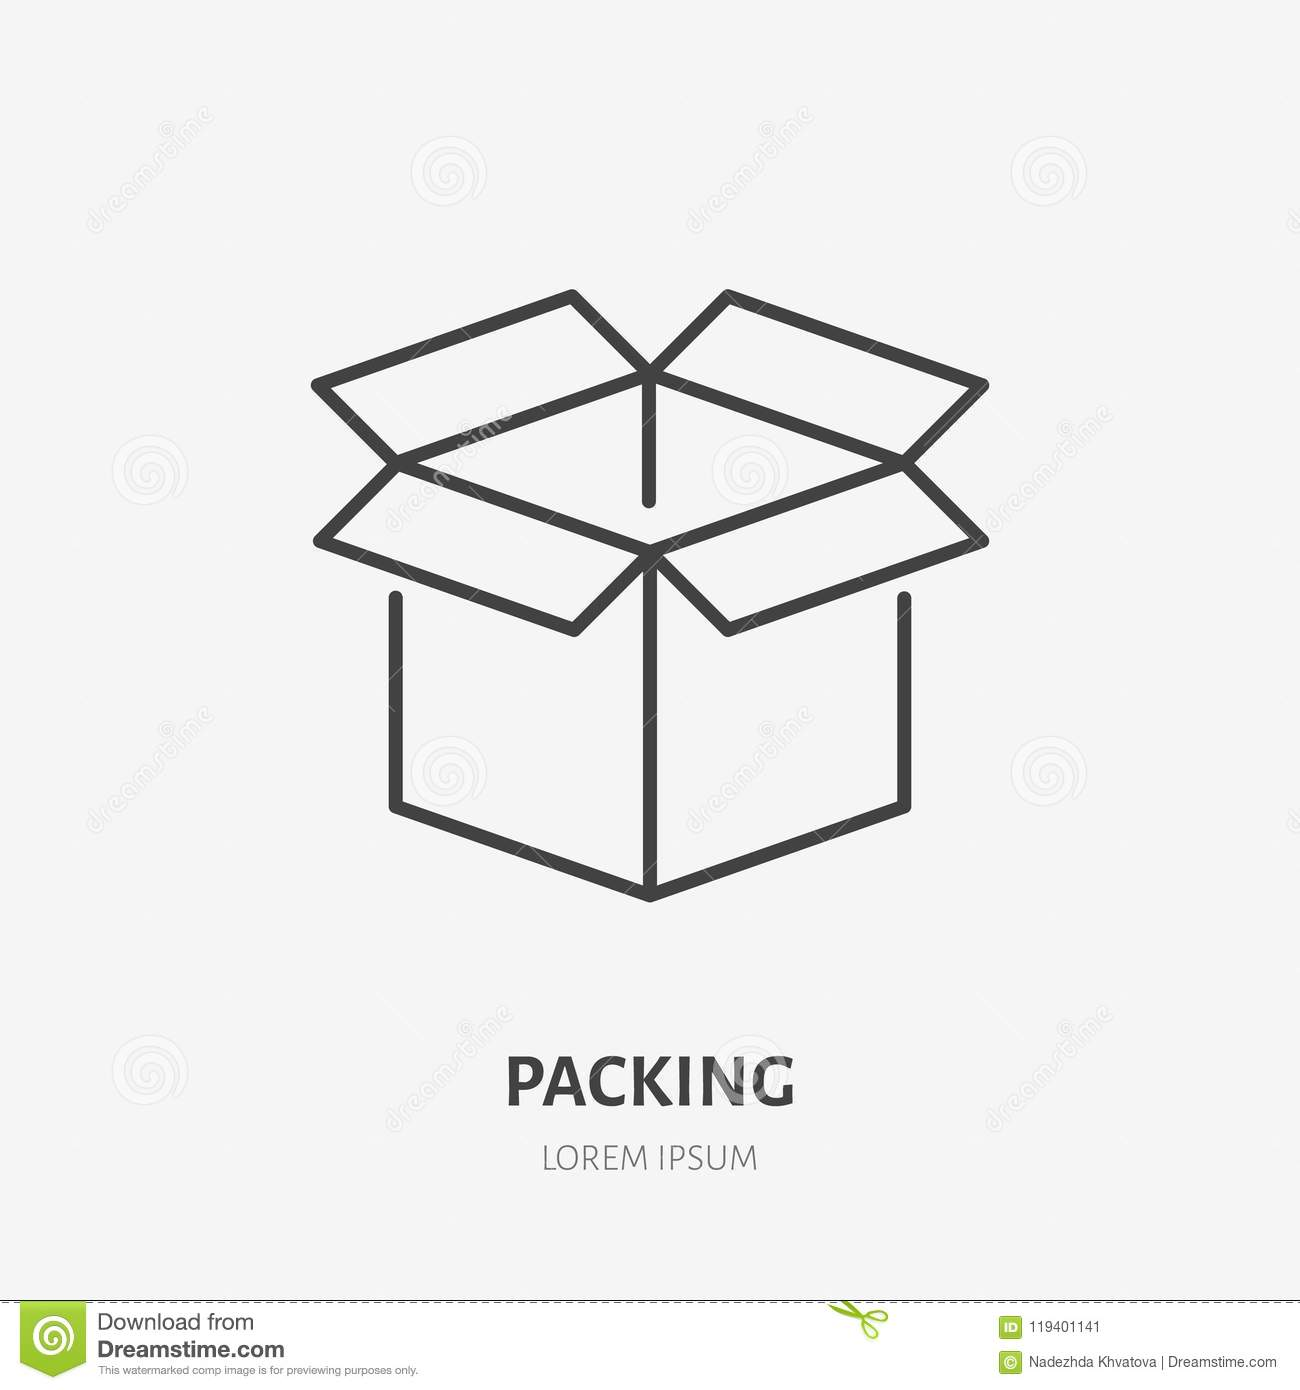 Open box flat line icon. Delivery, packing sign. Thin linear logo for freight services, cargo shipping